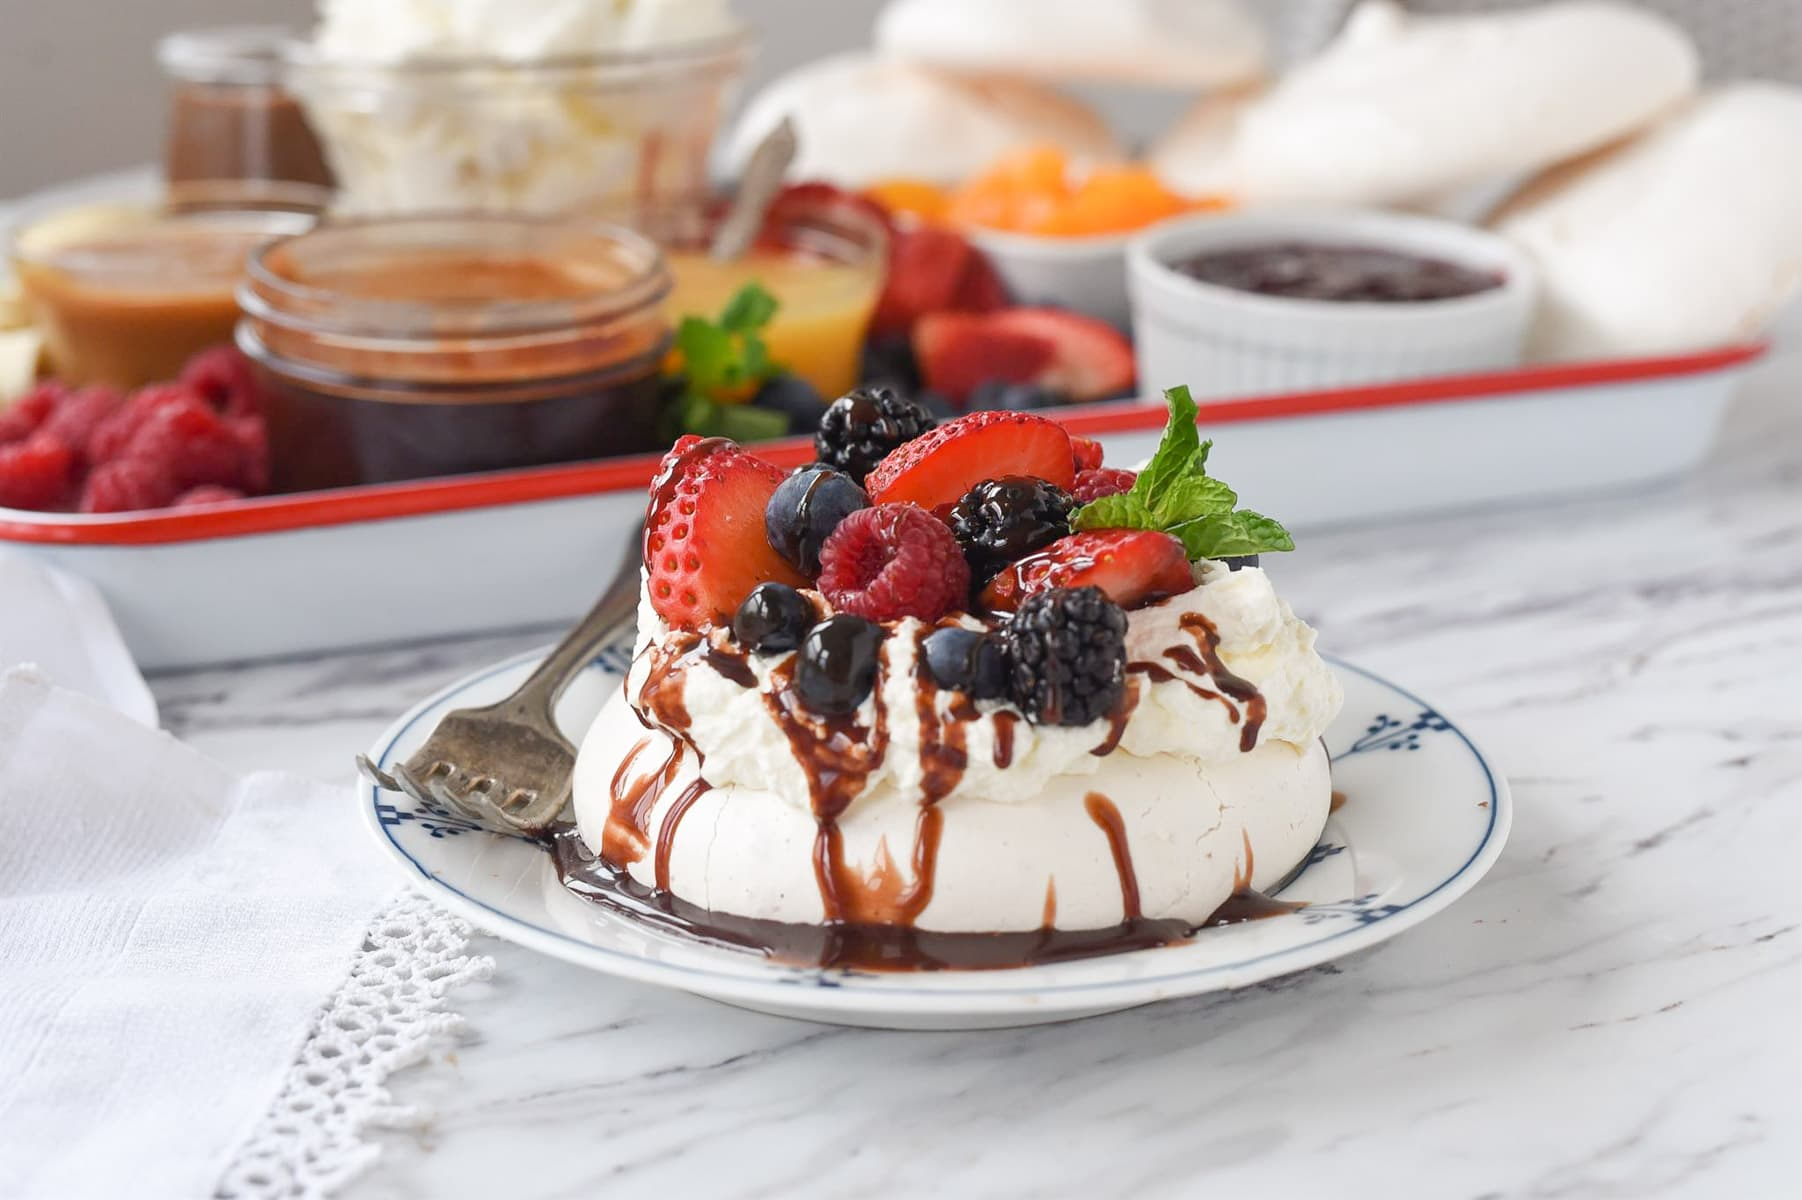 pavlova on a plate in front of dessert board